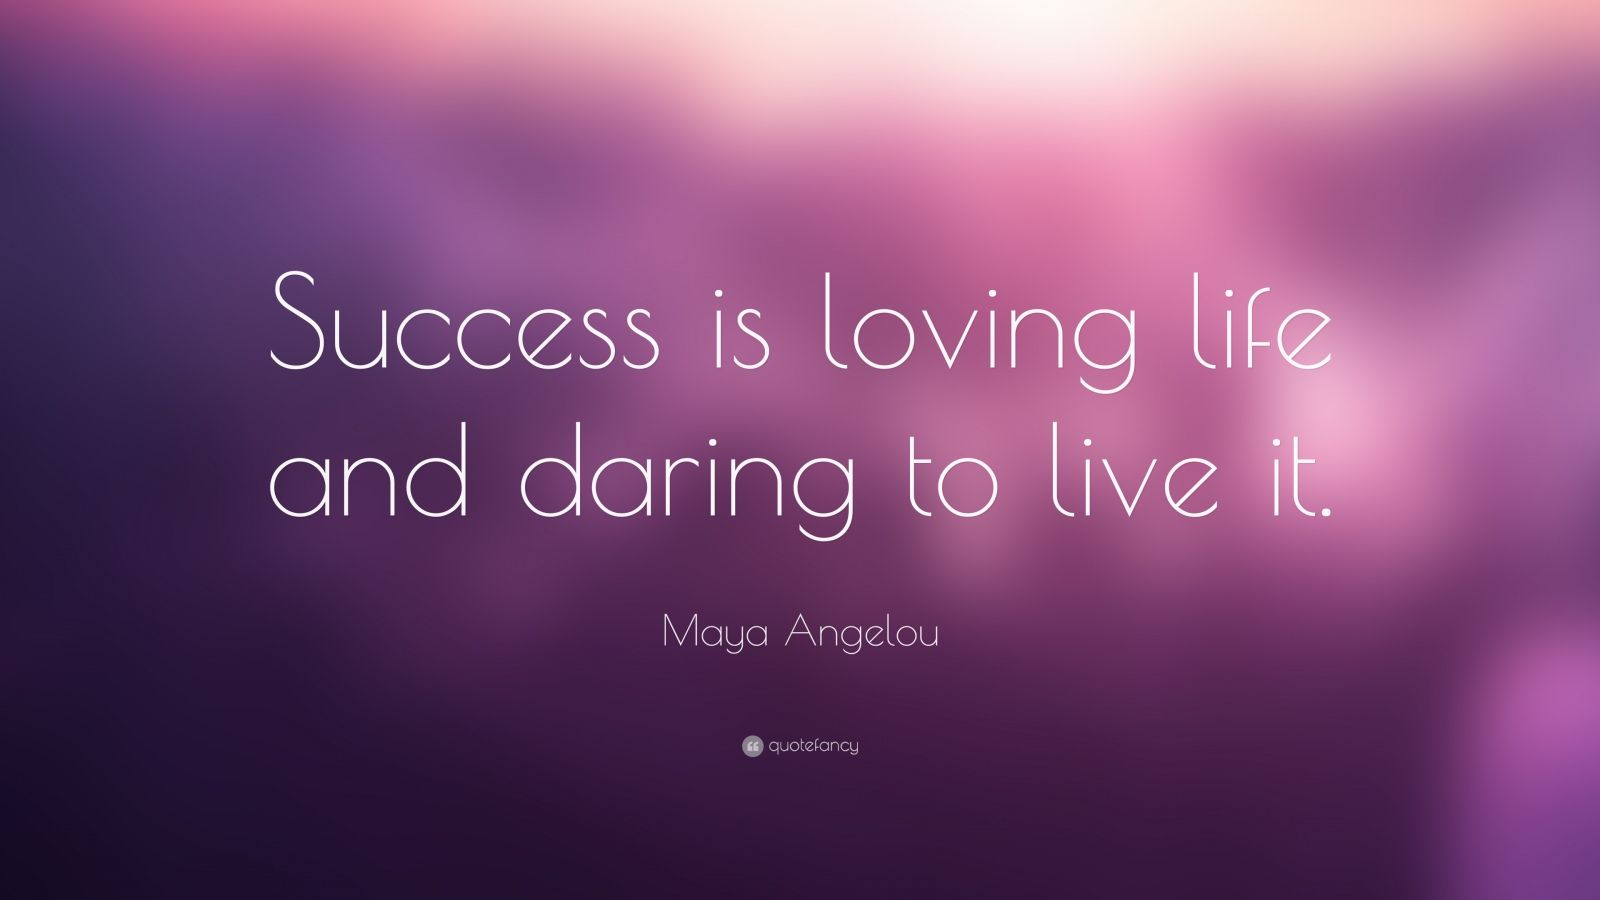 Love Quotes Maya Angelou Beauteous Maya Angelou Quotes 100 Wallpapers  Quotefancy